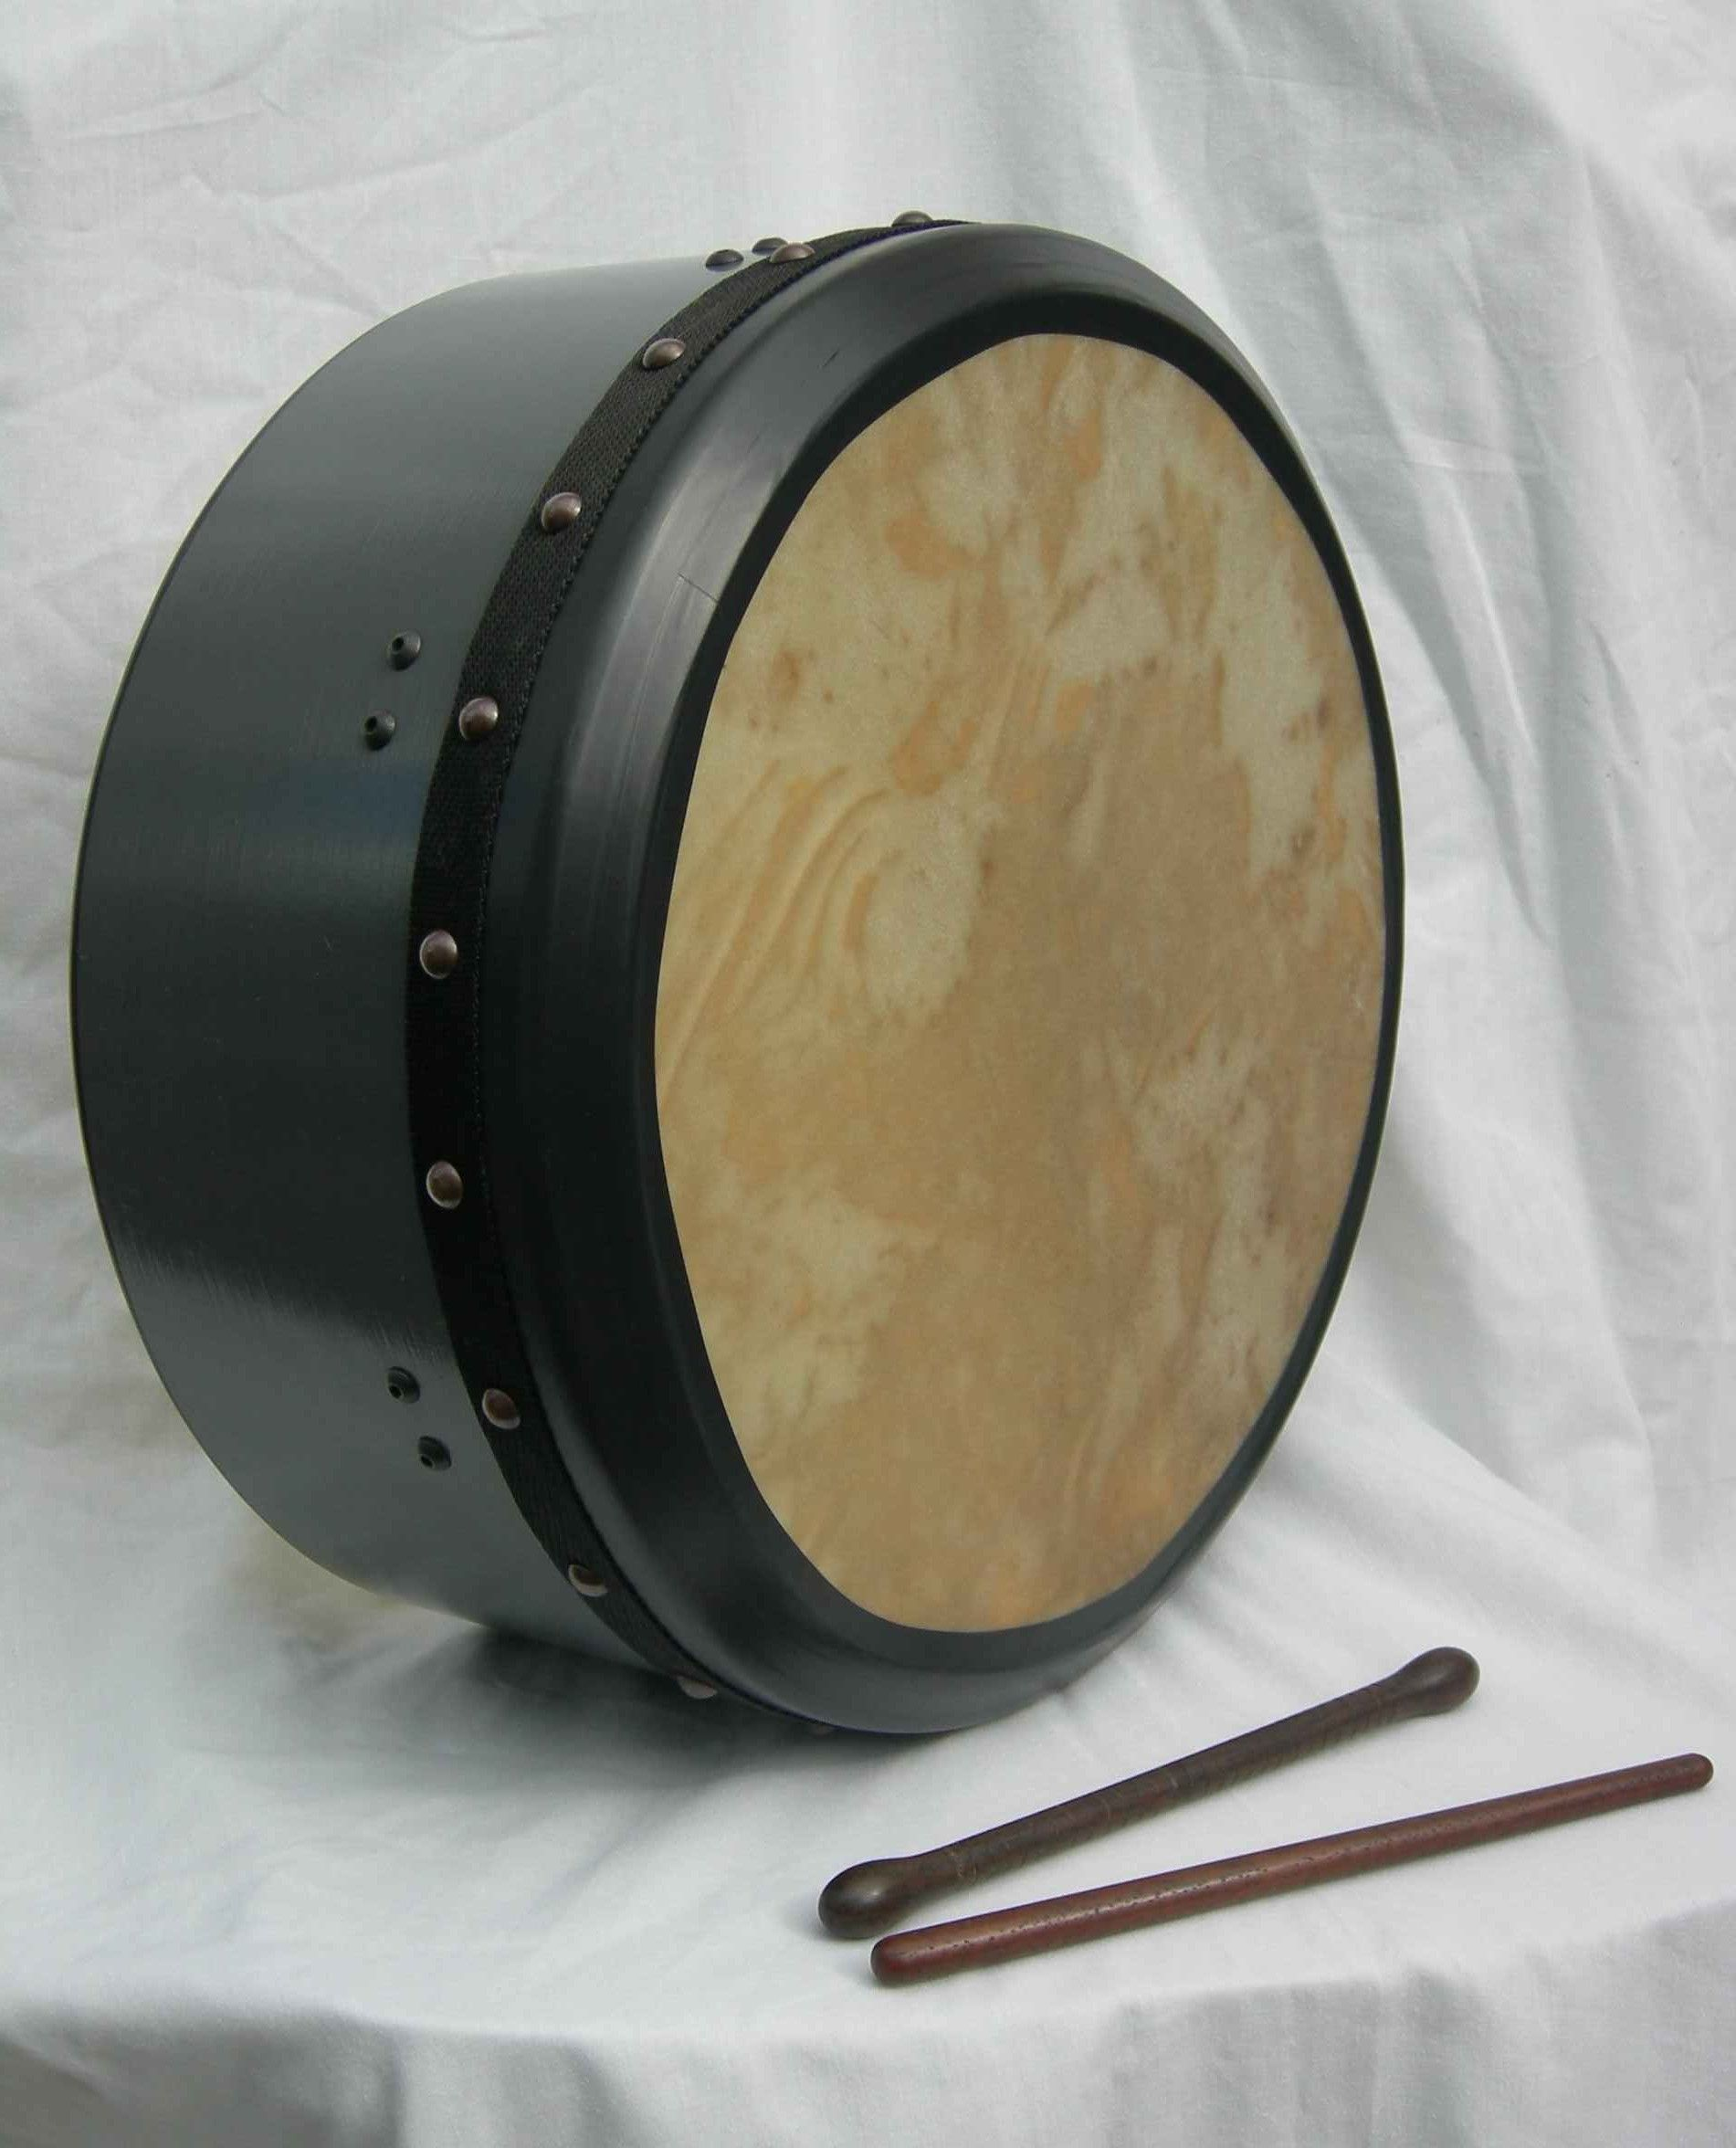 Finding Traditional Bodhran Drums